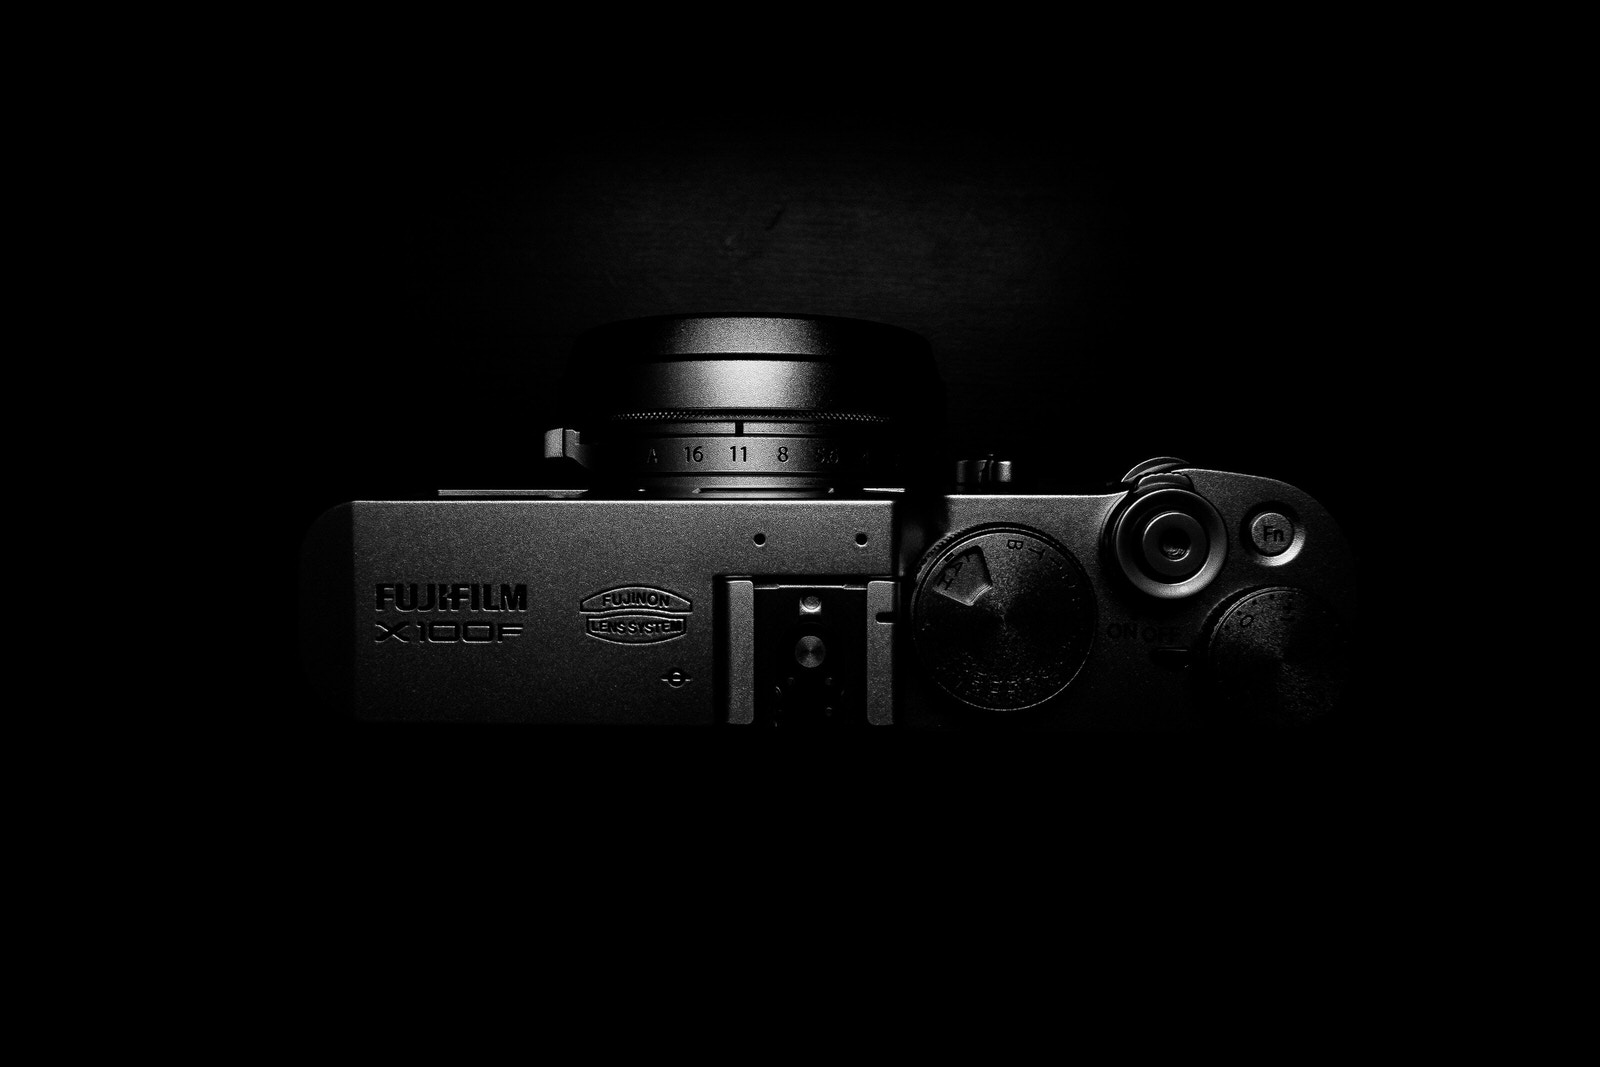 Setting up the Fujifilm X100F for Street Photography by Khürt Williams